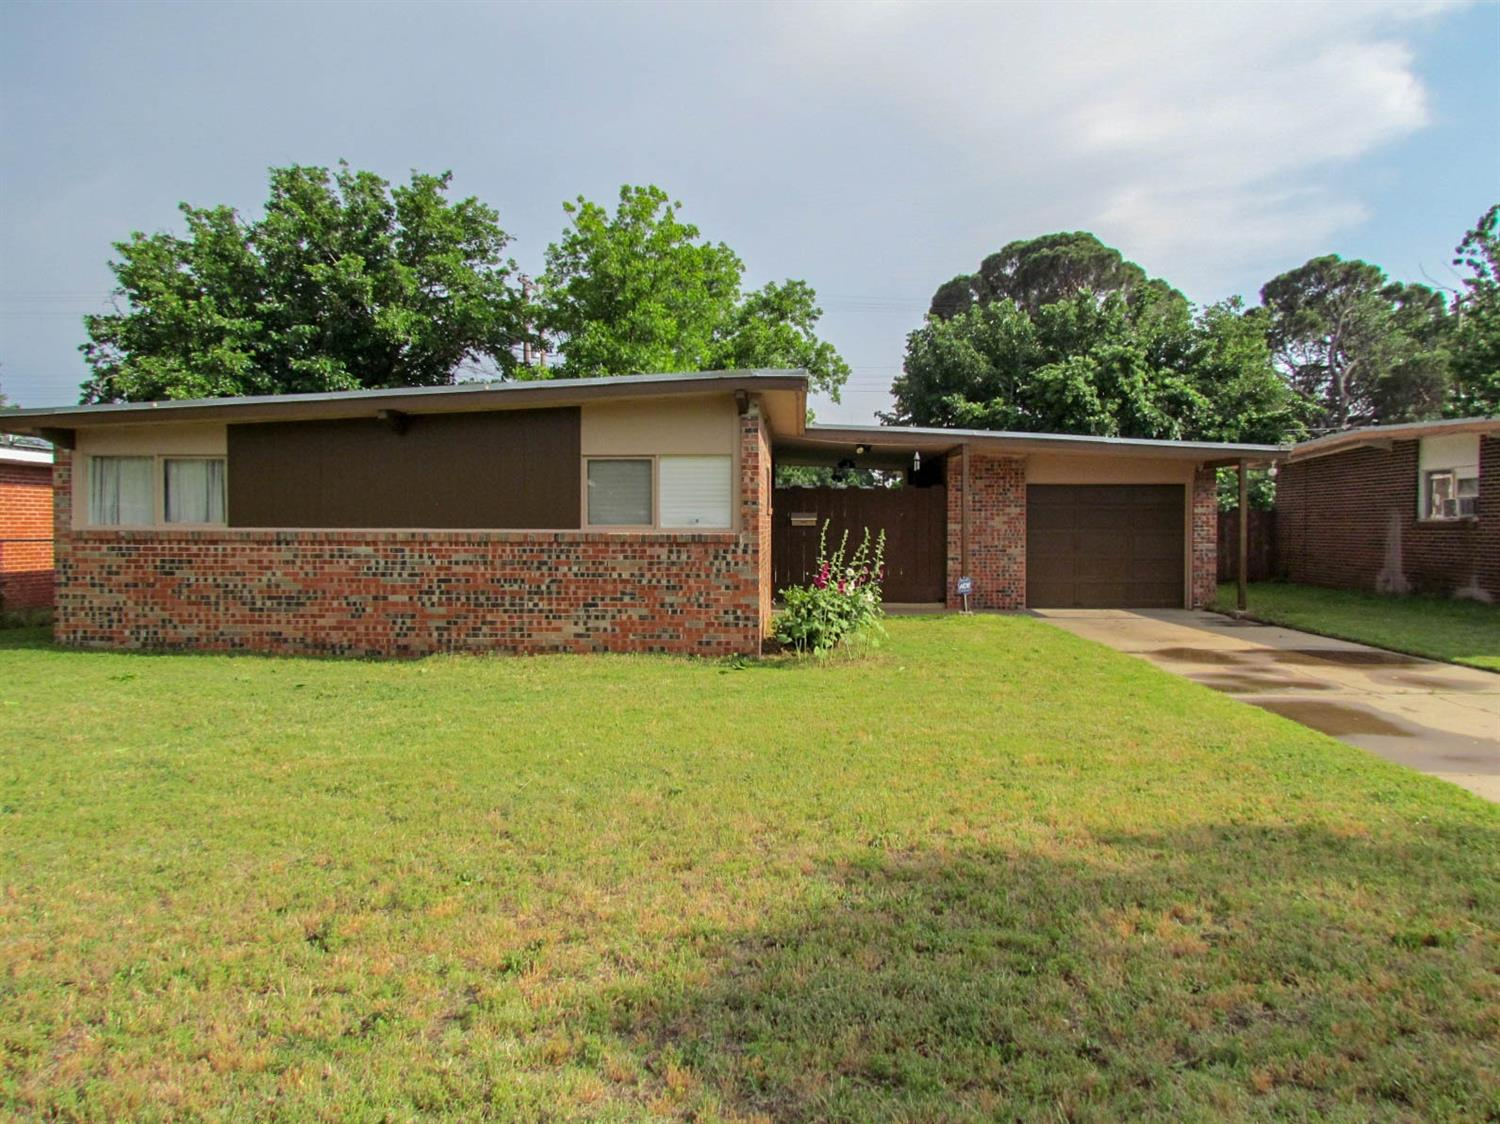 2315 48th Street, Lubbock in Lubbock County, TX 79412 Home for Sale